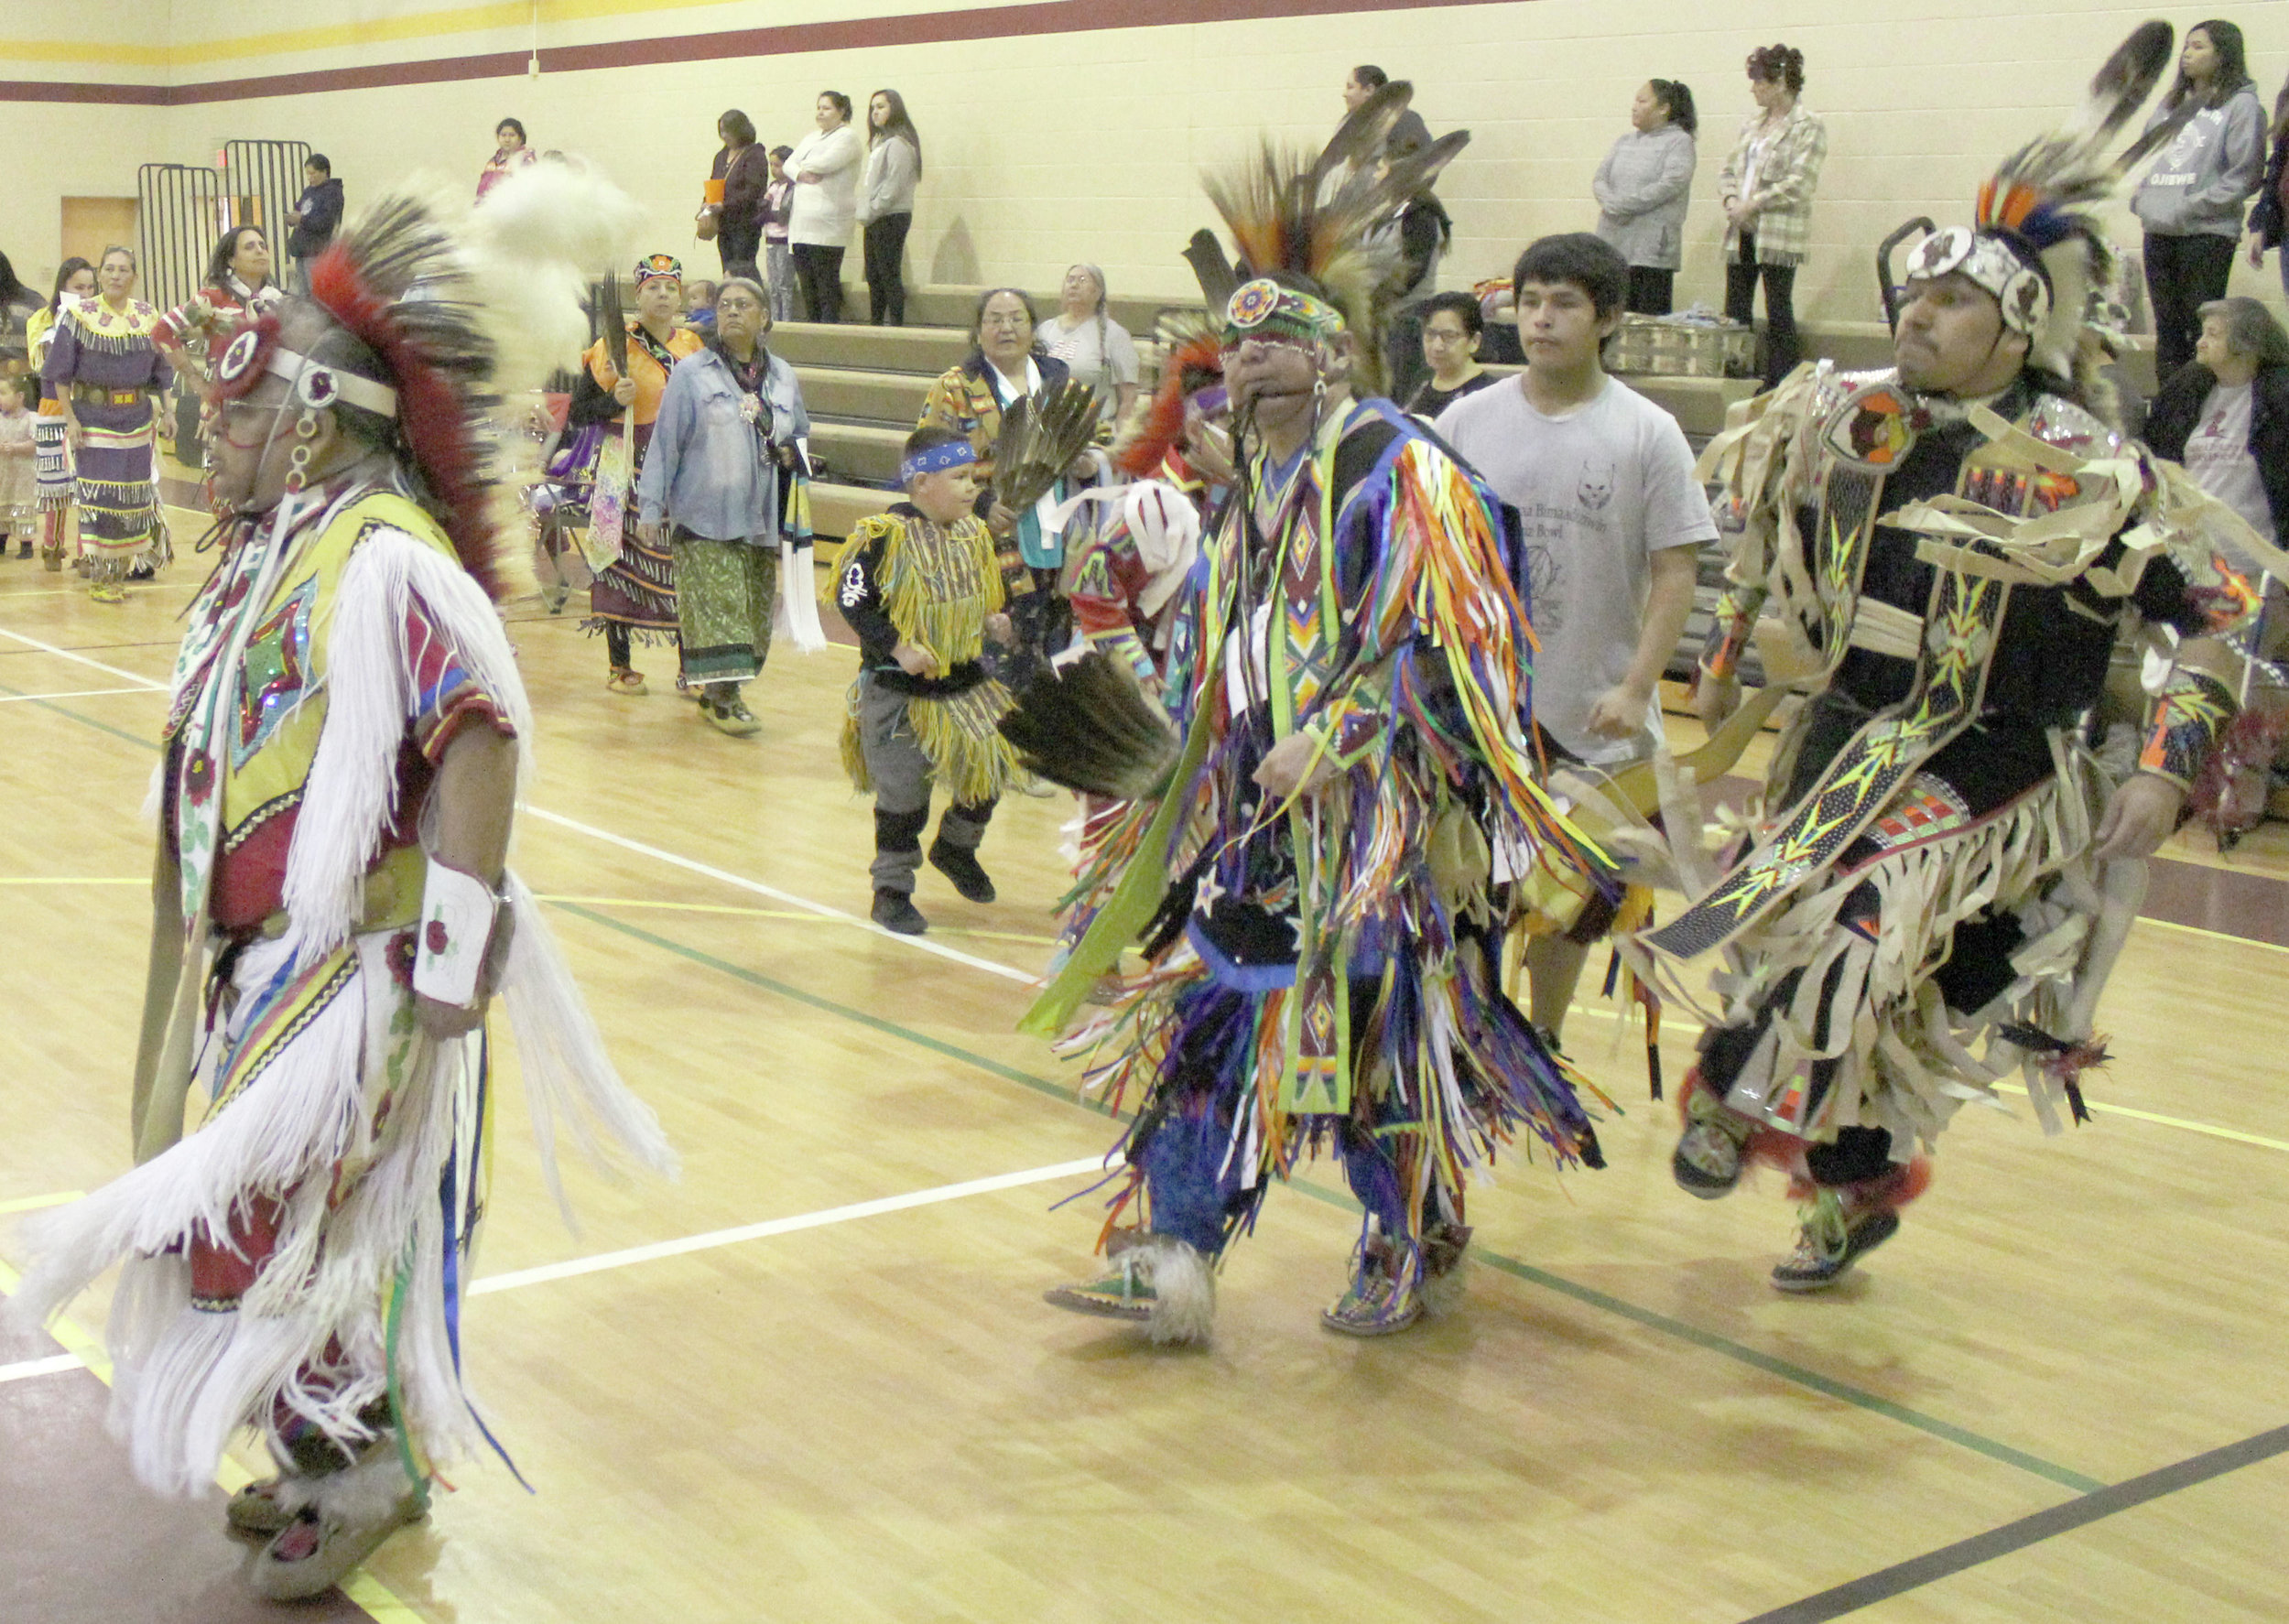 While some participants in the grand entry moved in sedate step, some danced up a sweat and kept the tassels of their ceremonial regalia in motion.